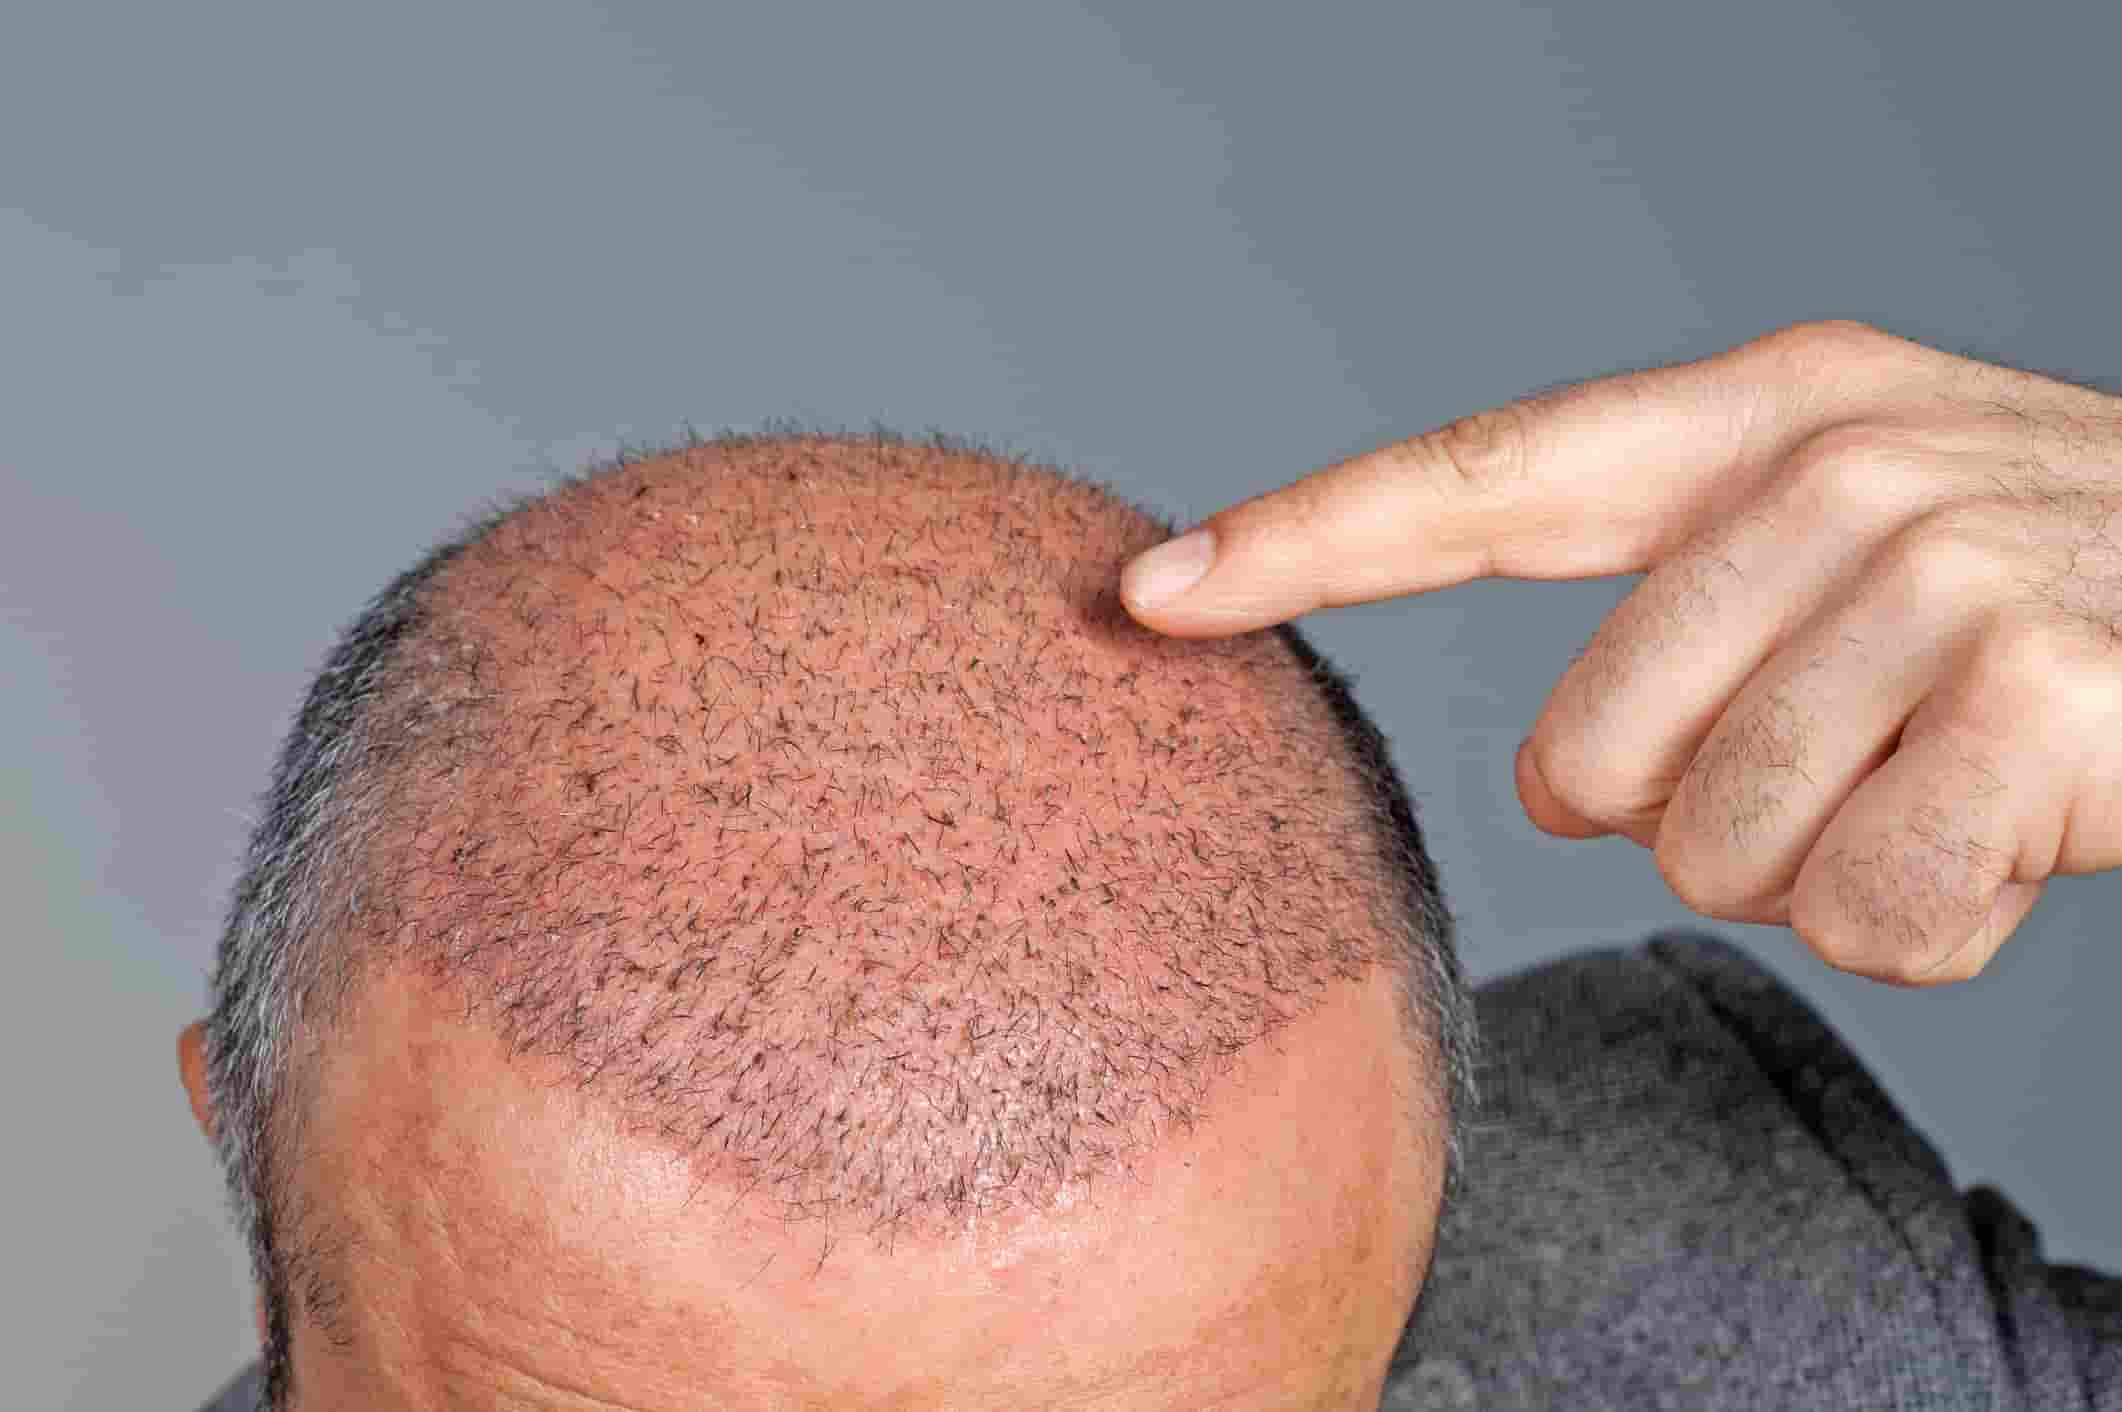 Baldhead Patient for hair transplant